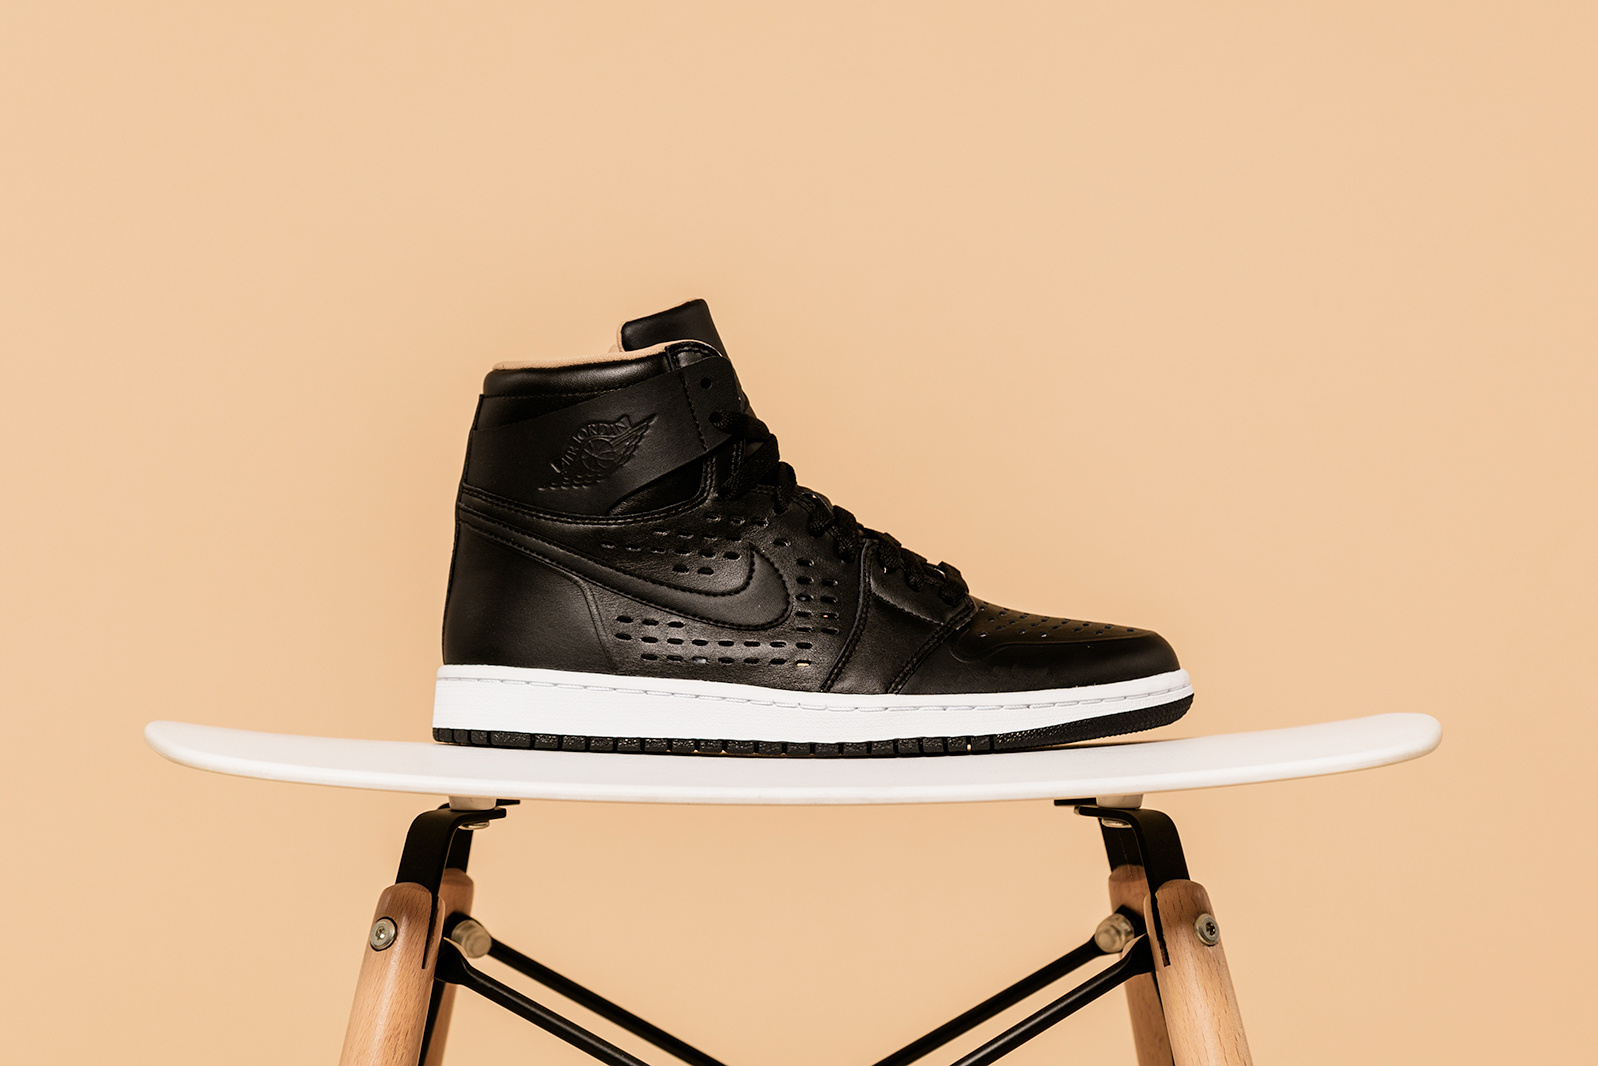 air-jordan-1-retro-high-perf-03.jpg